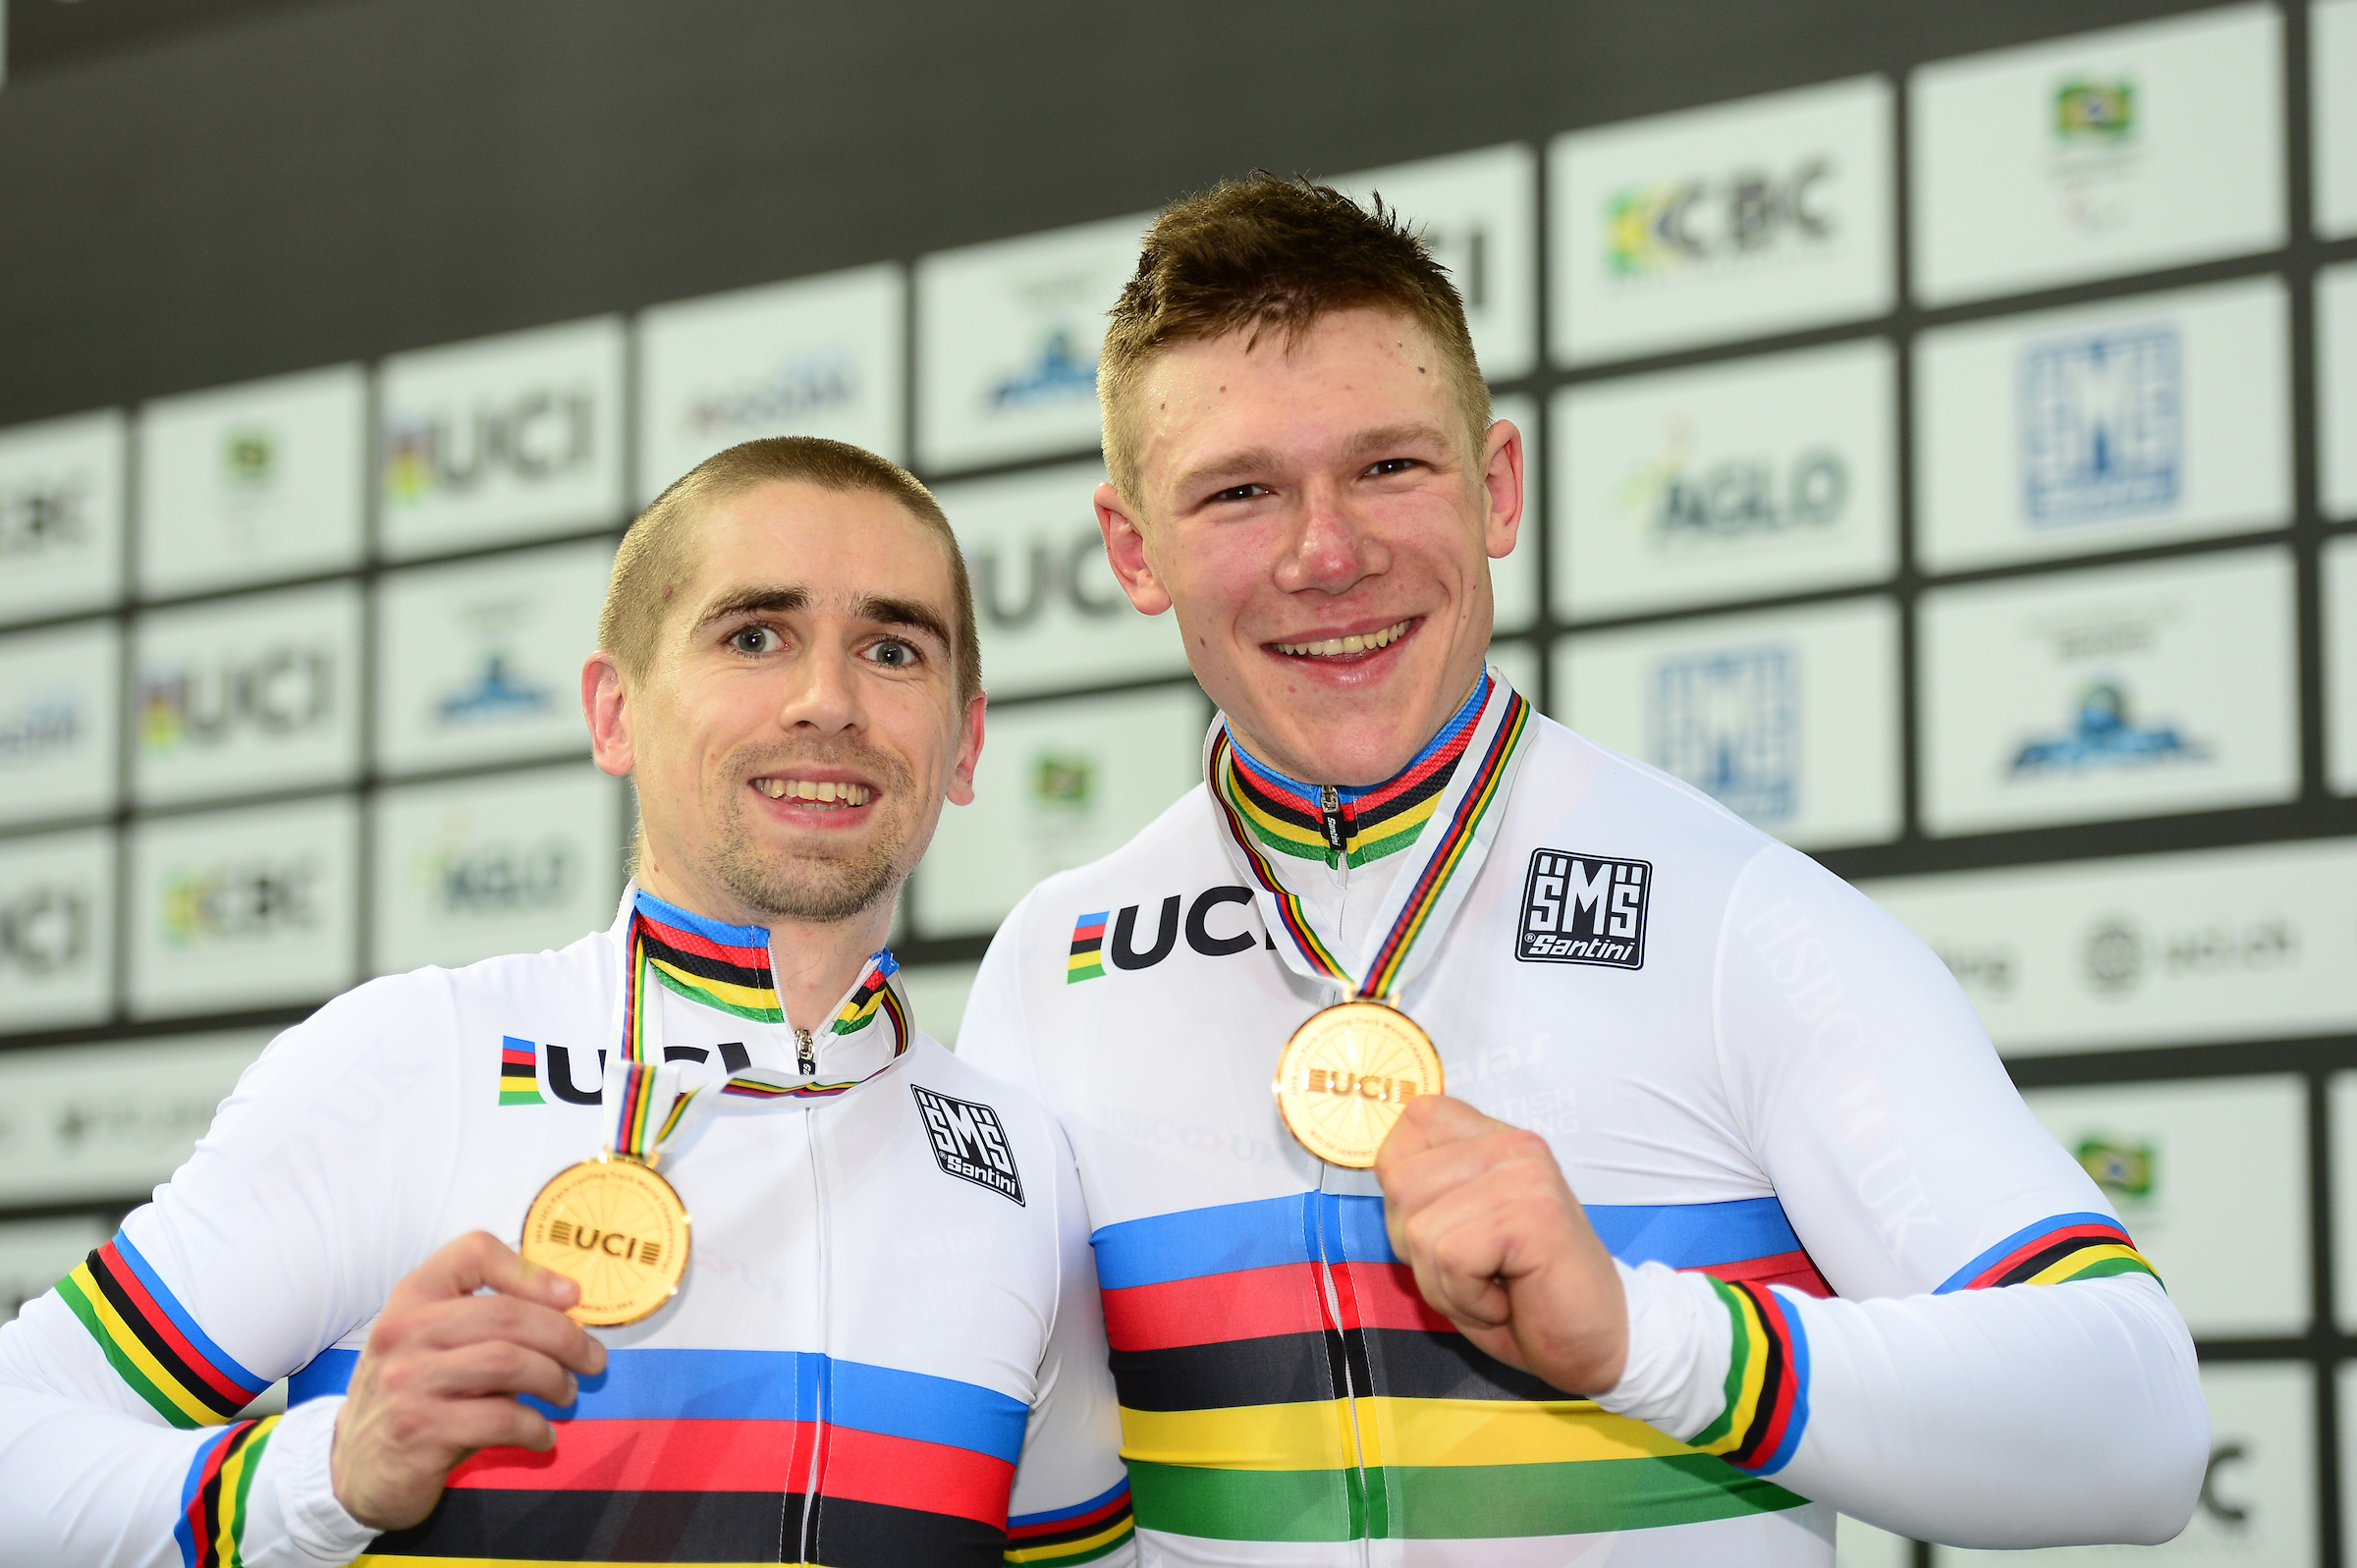 Fachie and Rotherham, right, with their kilo gold medals at the 2018 worlds.